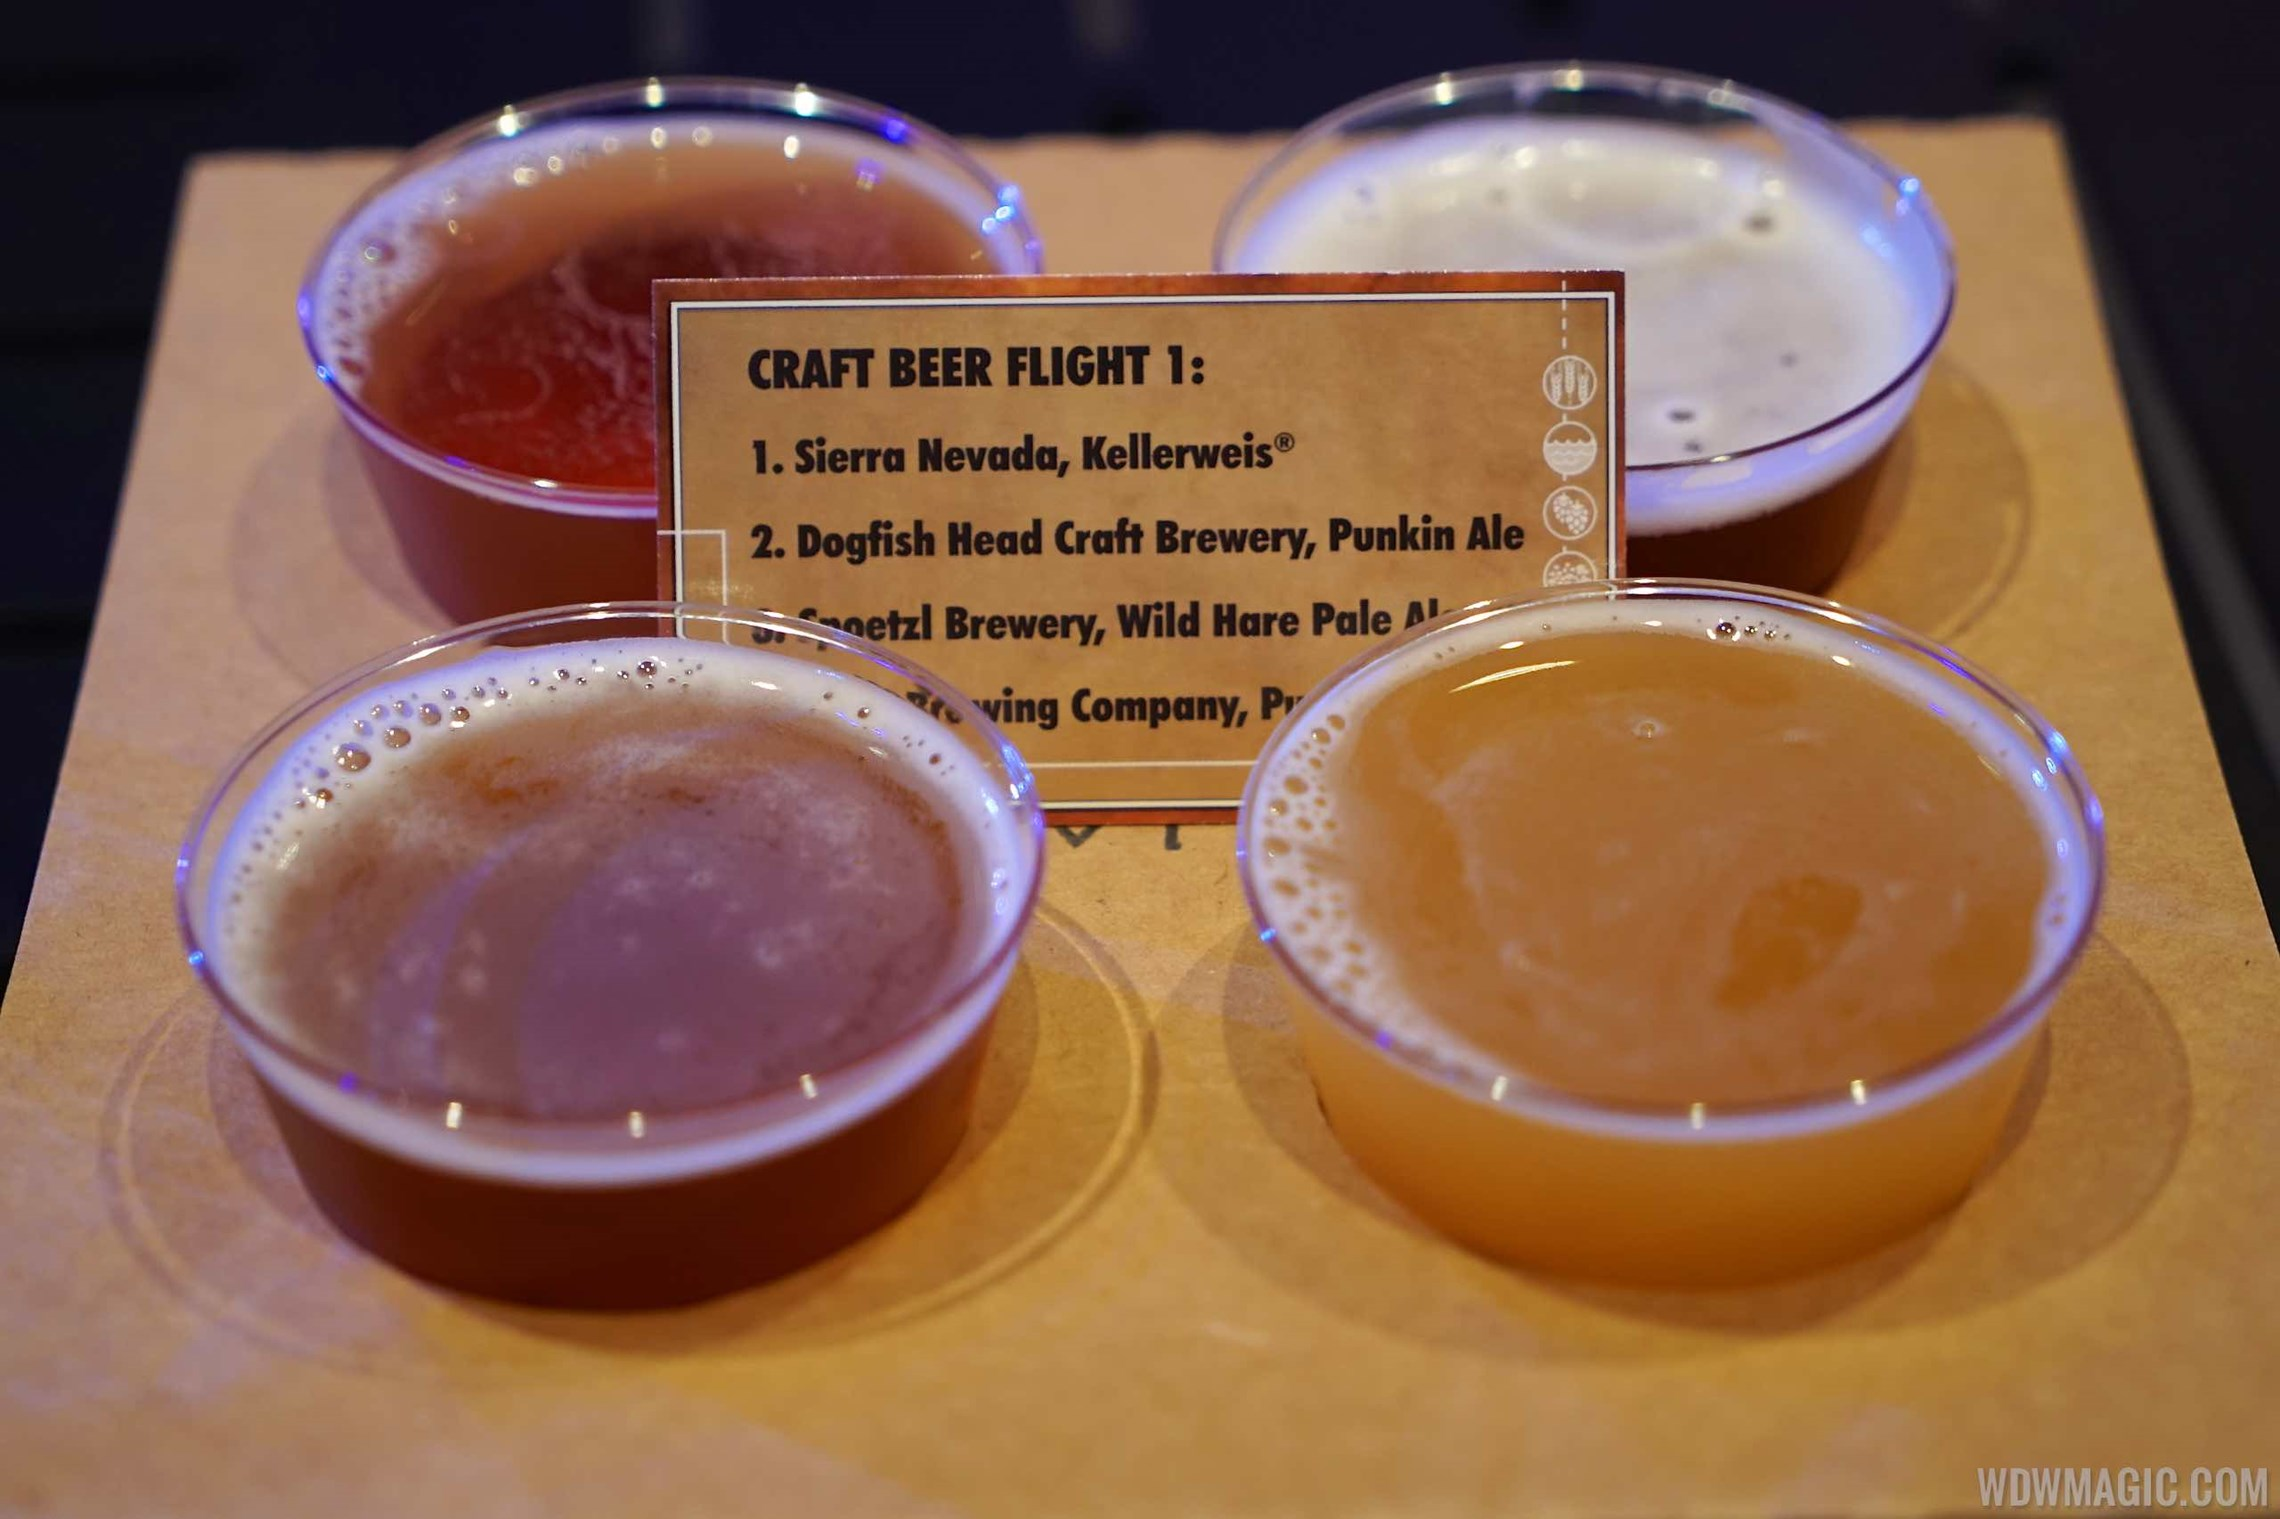 Craft Beers Food and Wine Marketplace overview